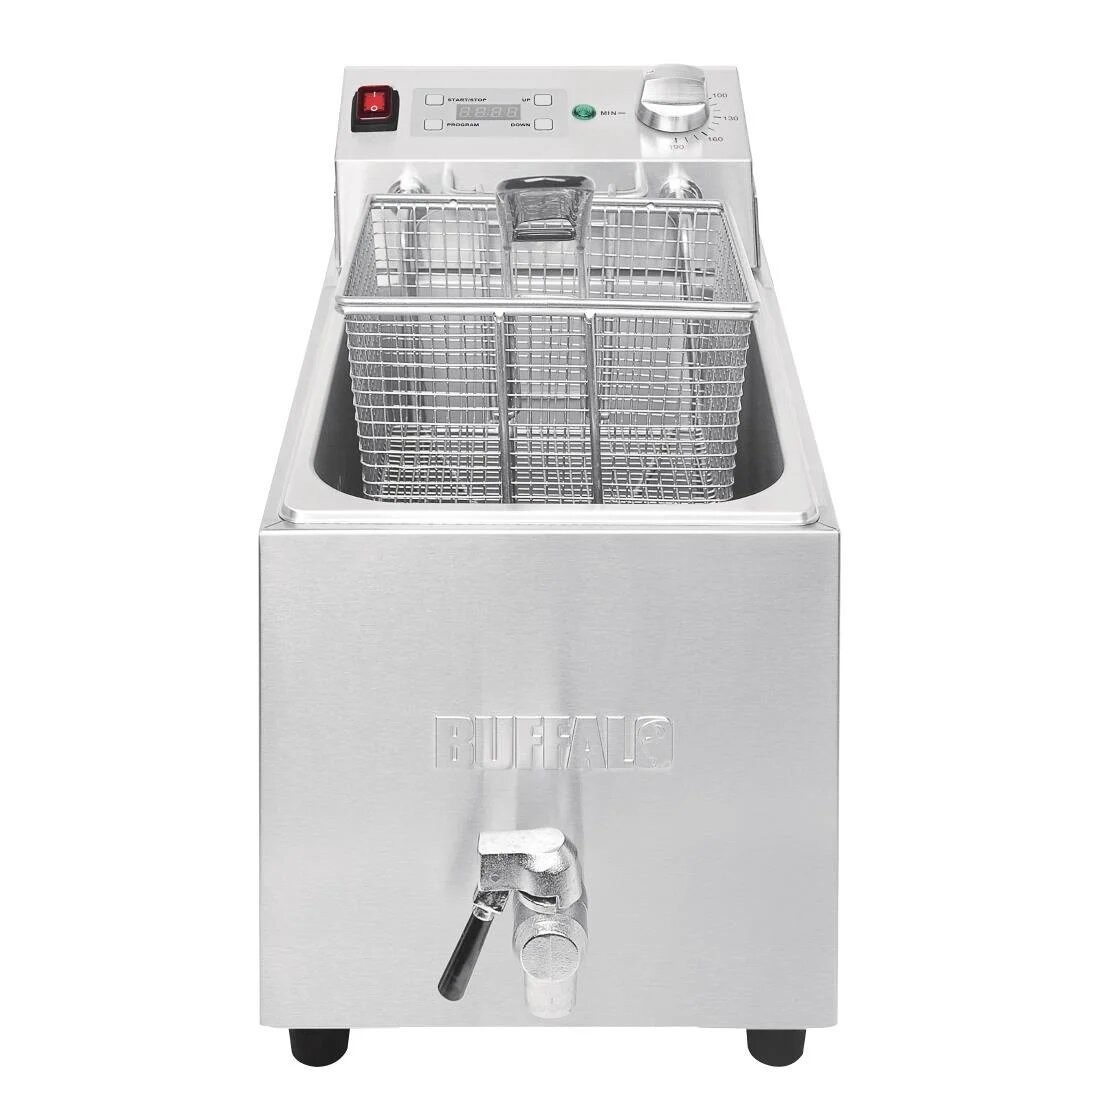 Buffalo FC376 Single Tank Countertop Fryer with Timer